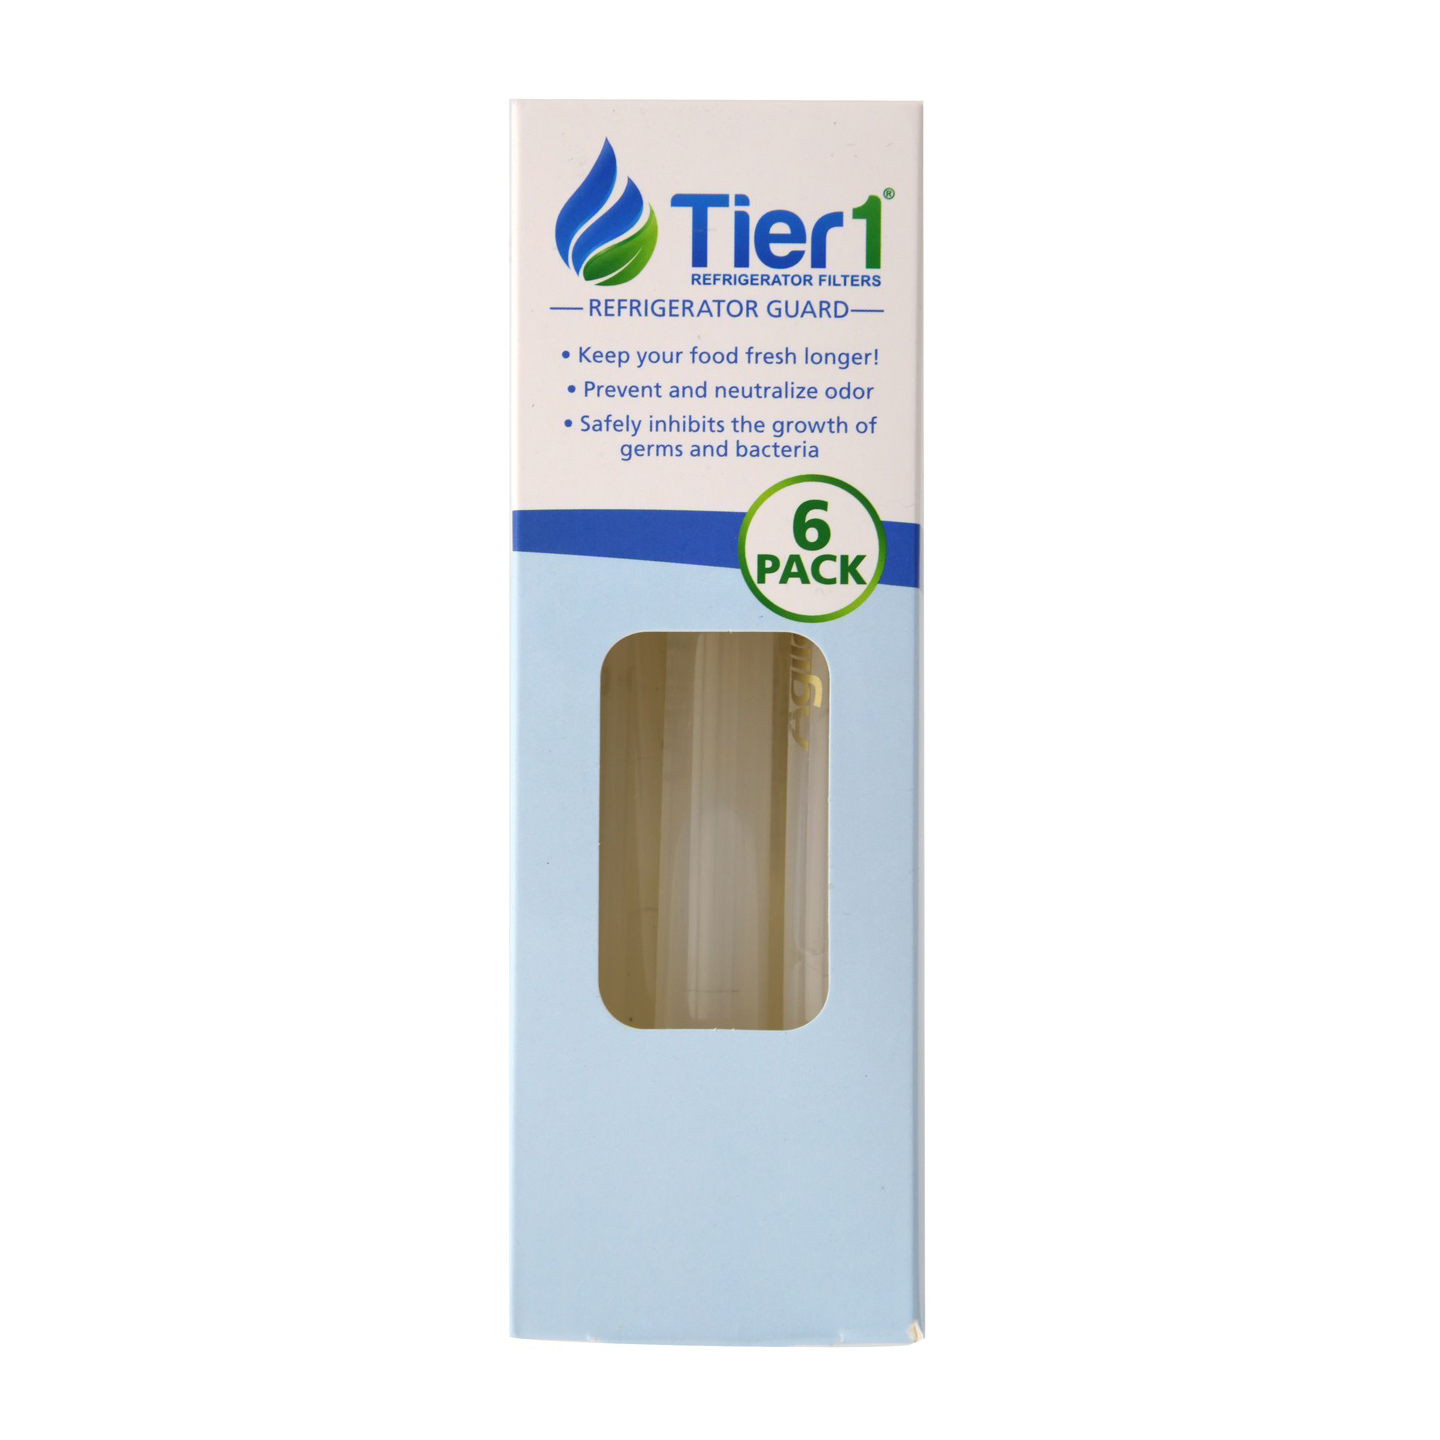 Universal Refrigerator Odor and Bacteria Inhibiting Air Freshener by Tier1 (6 Pack) TIER1-RAF1160-6PK